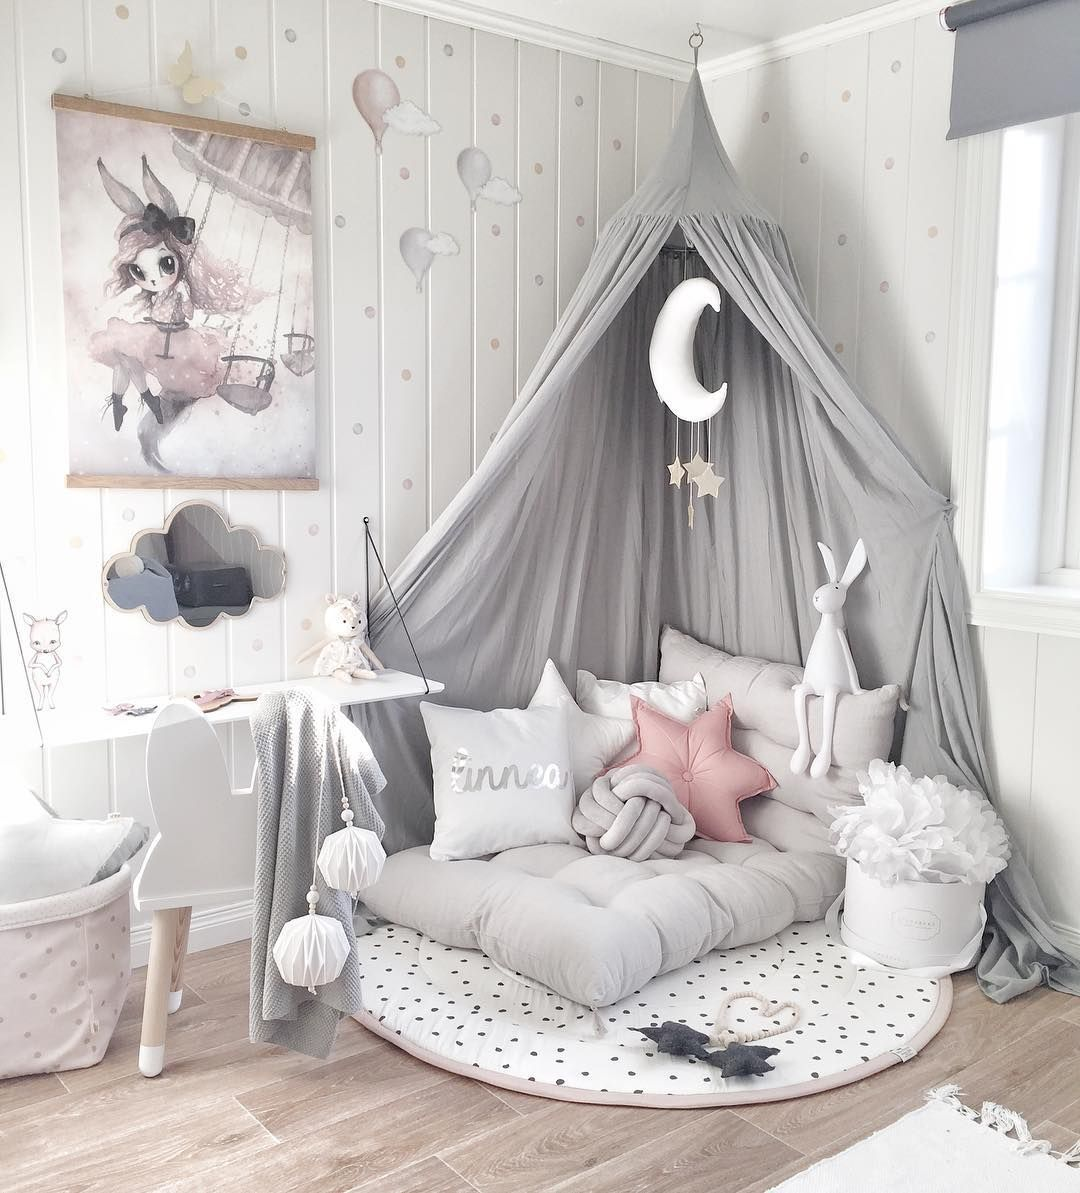 LOVE THE PRETTY COLOUR COMBO IN THIS COZY & FABULOUS ROOM, ALL SET FOR A LITTLE GIRL! - SO SWEET!